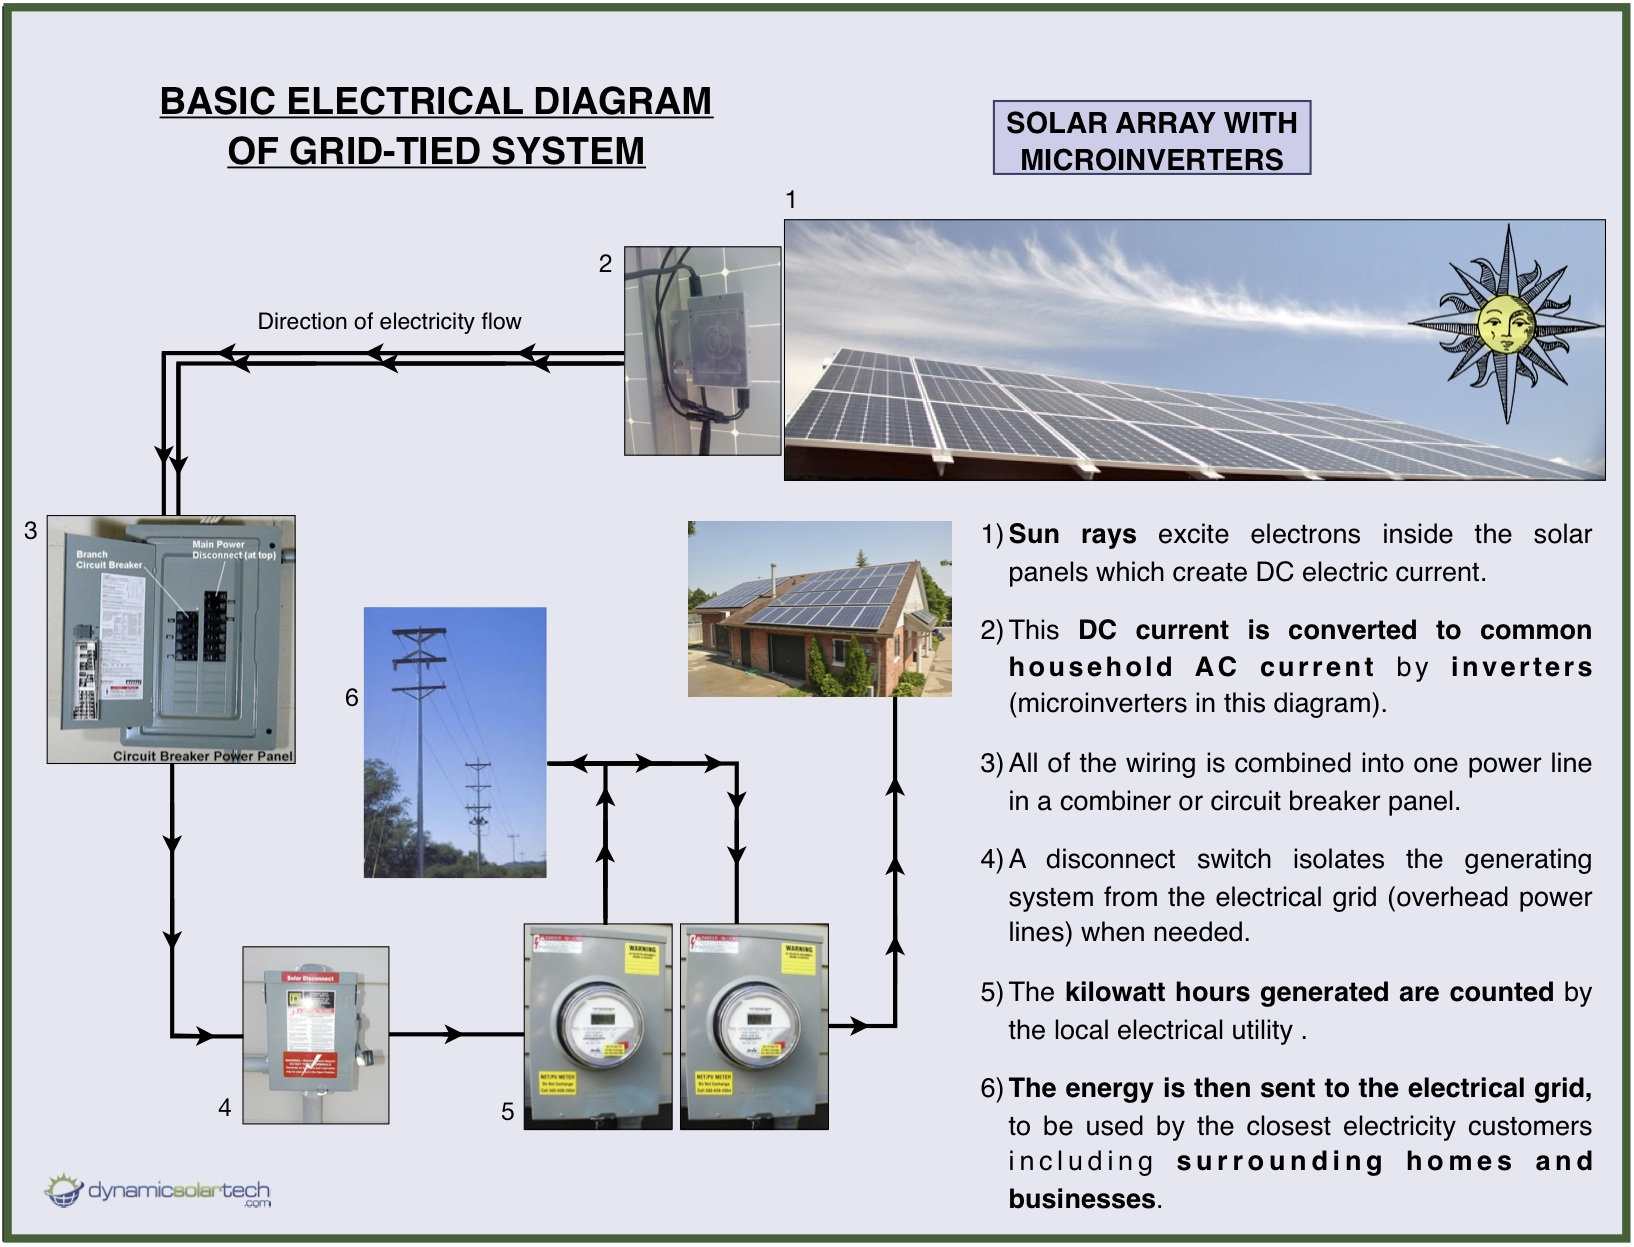 Basic Wiring Diagram Solar Energy Great Design Of Travel Trailer Power How Panels Work Dynamic Tech Diagrams For Homes Rv Shore